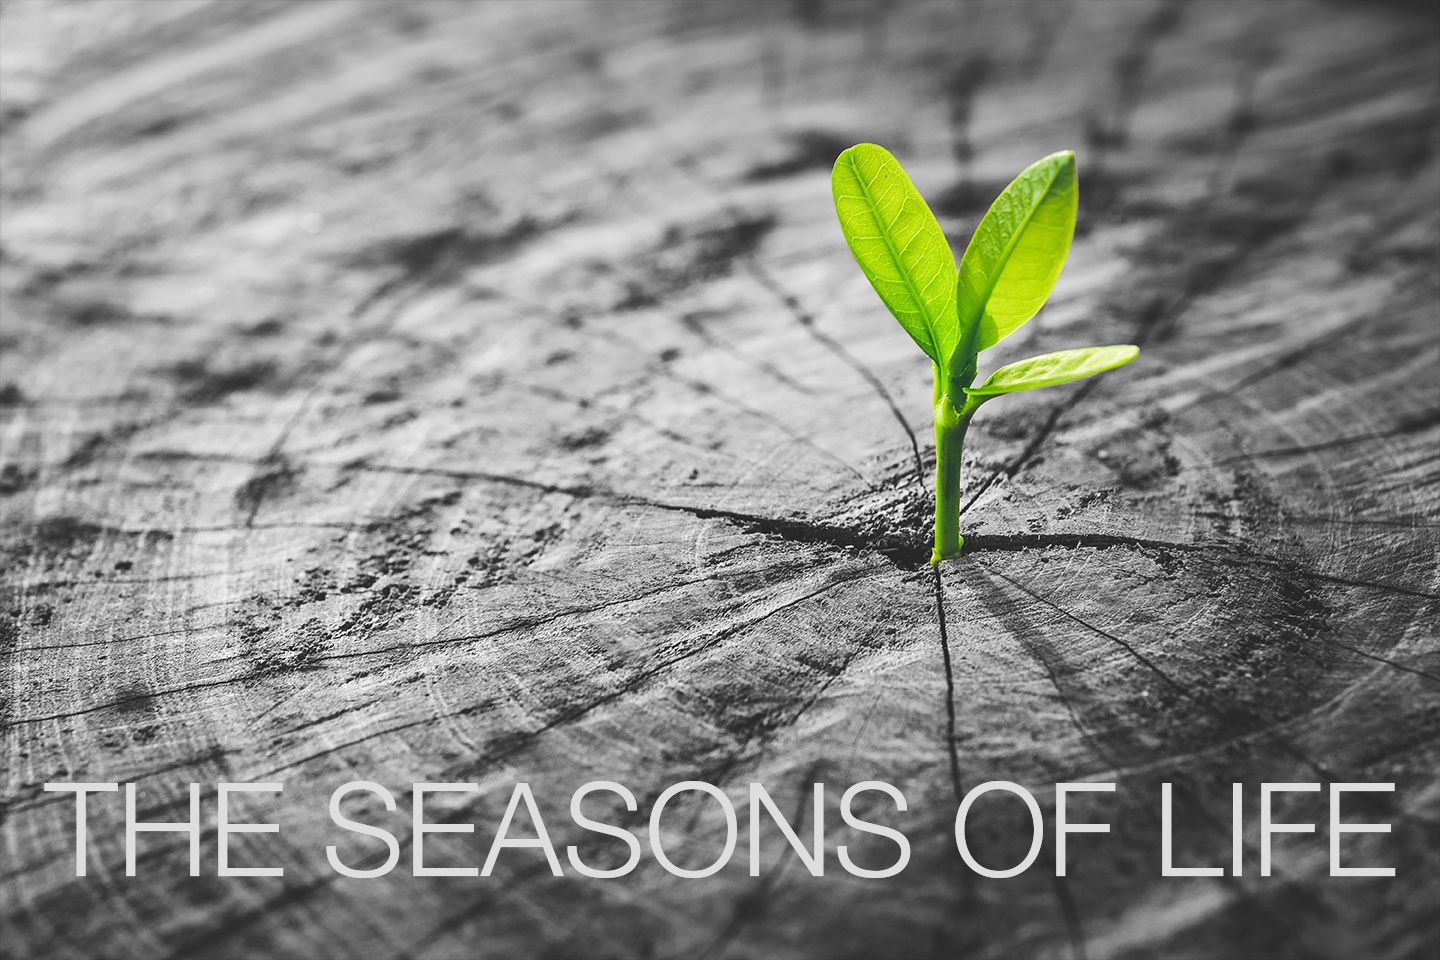 Seasons of Life project